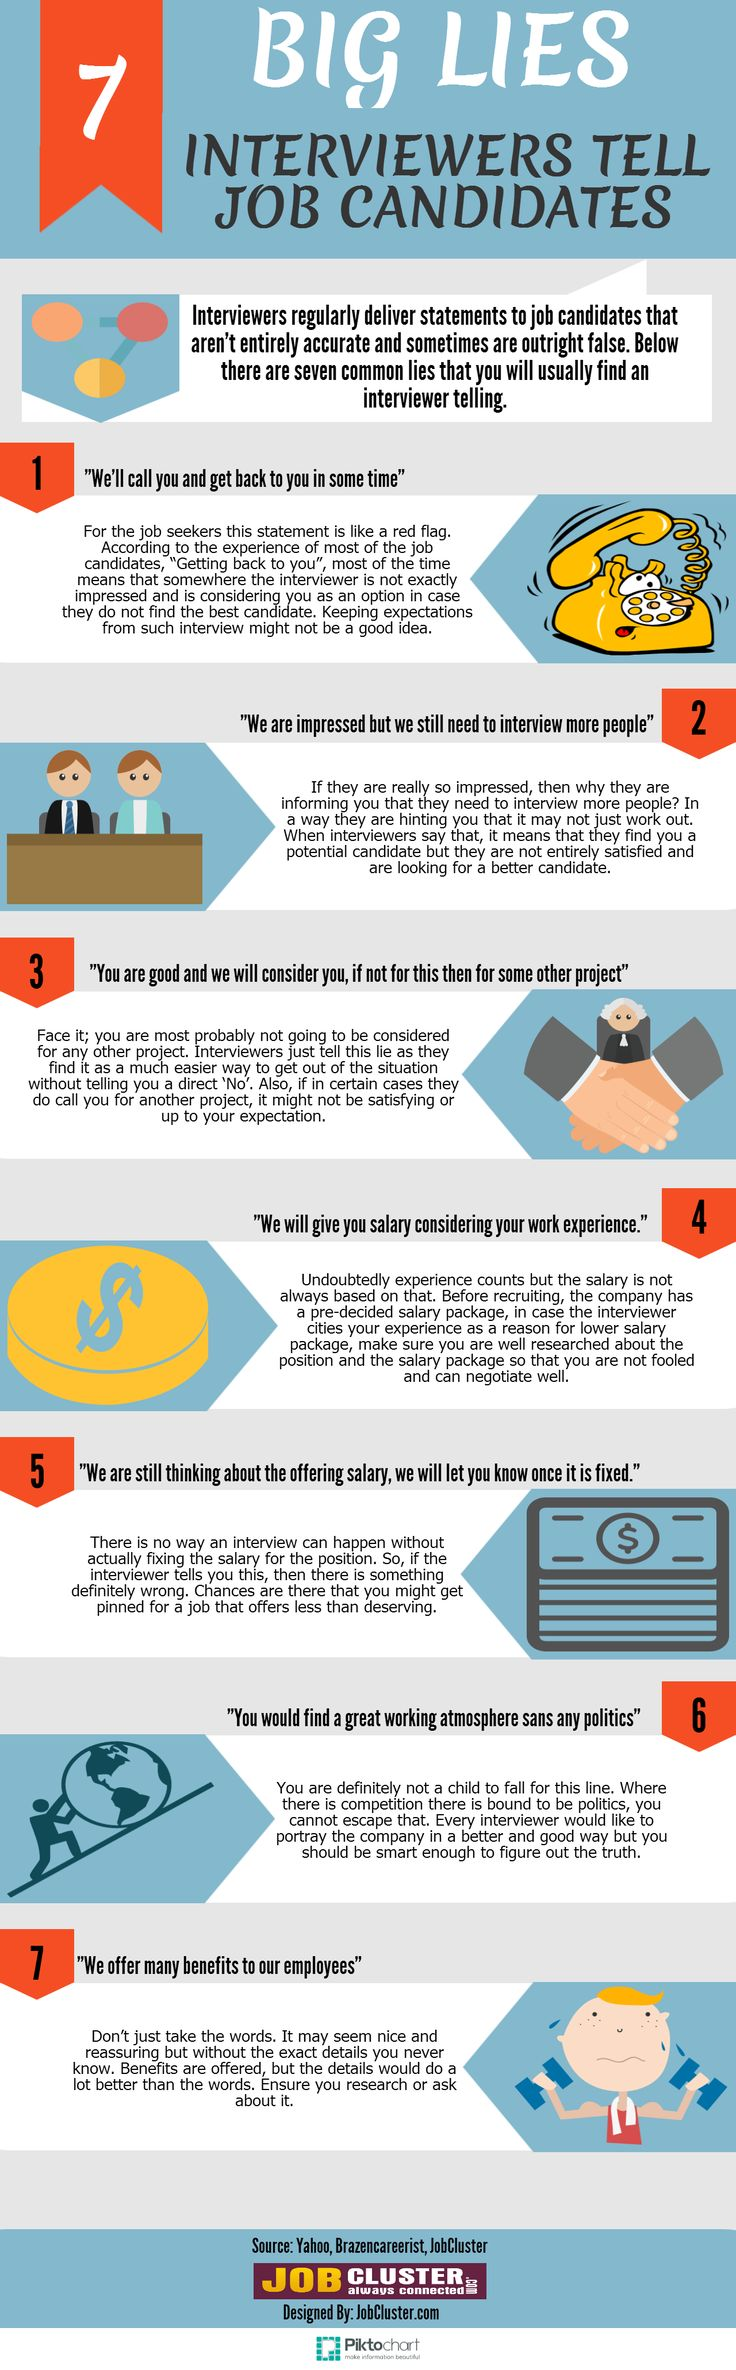 best images about resumes interviews resume what are the 7 big lies that interviewers tell job candidates infographic